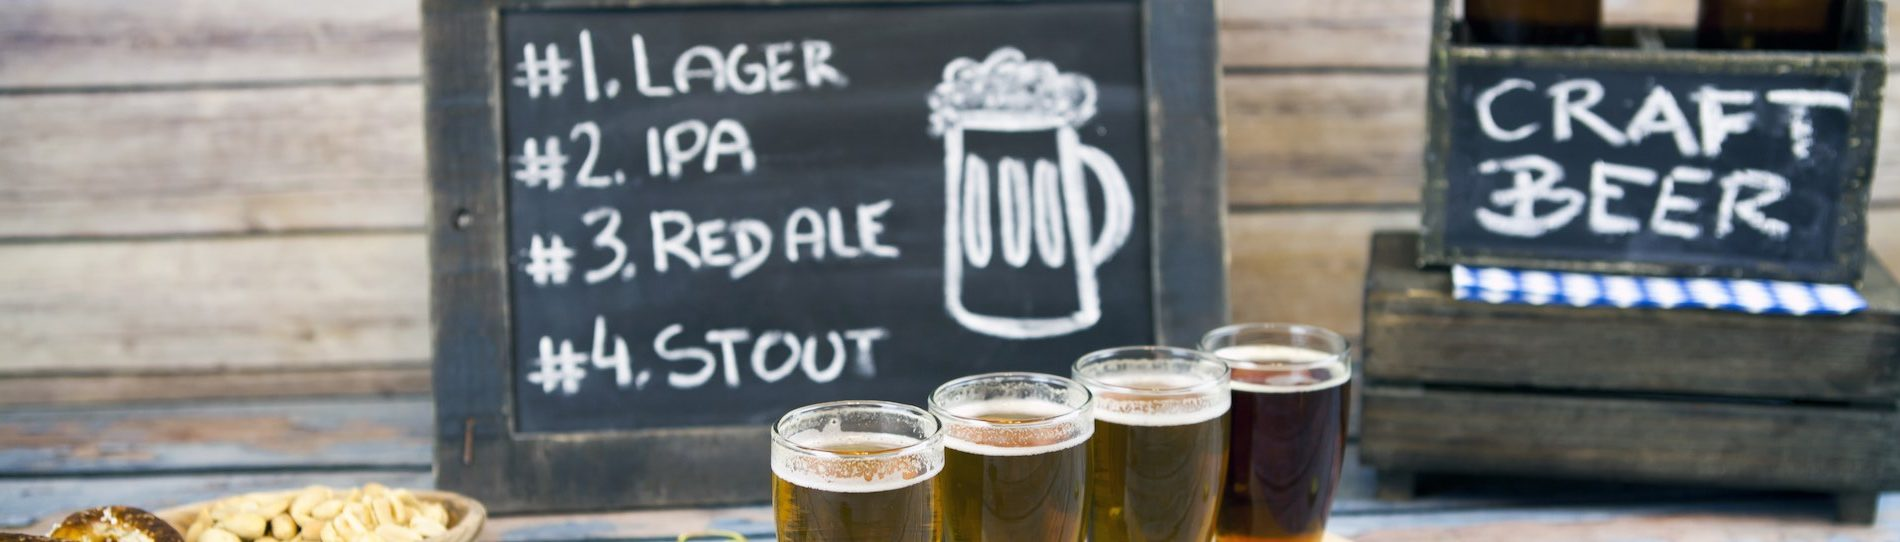 beer craft chalk board and beers